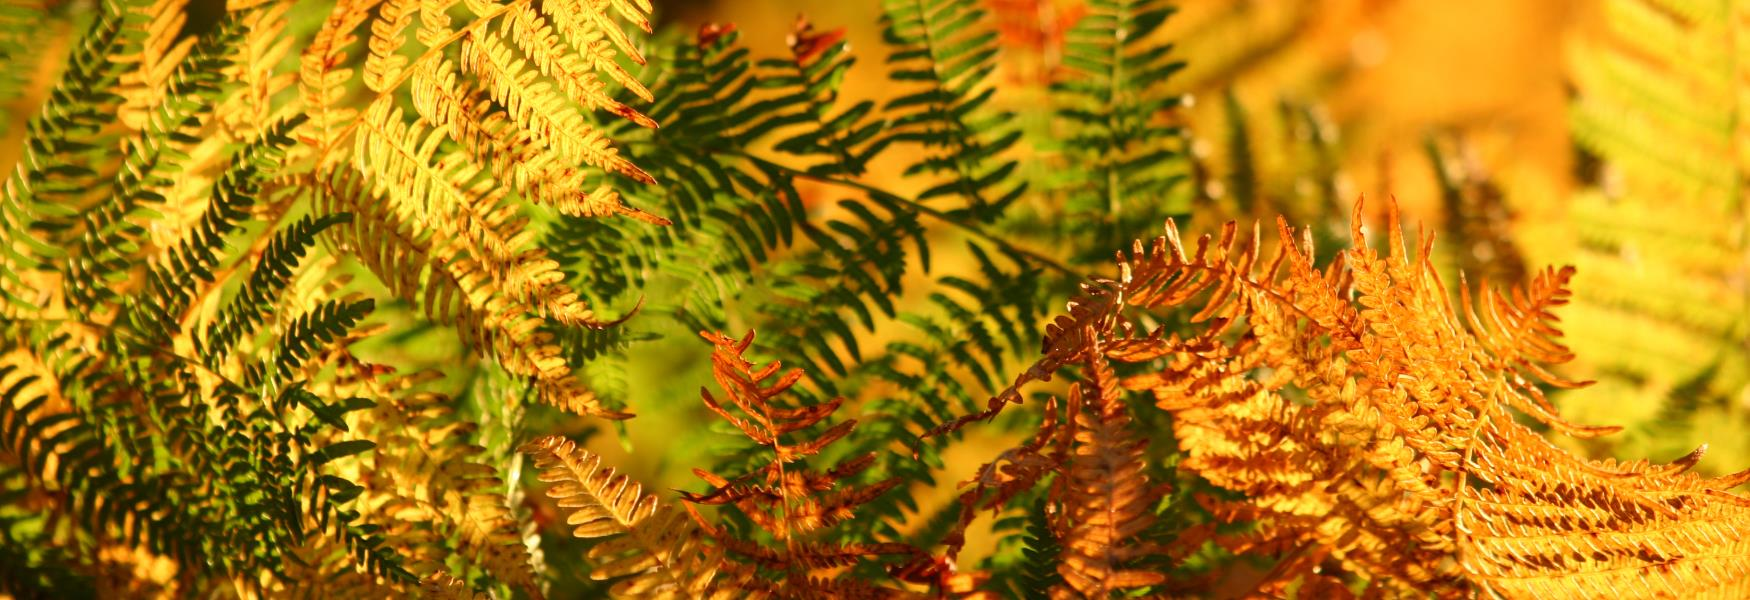 autumn orange ferns fauna in the new forest